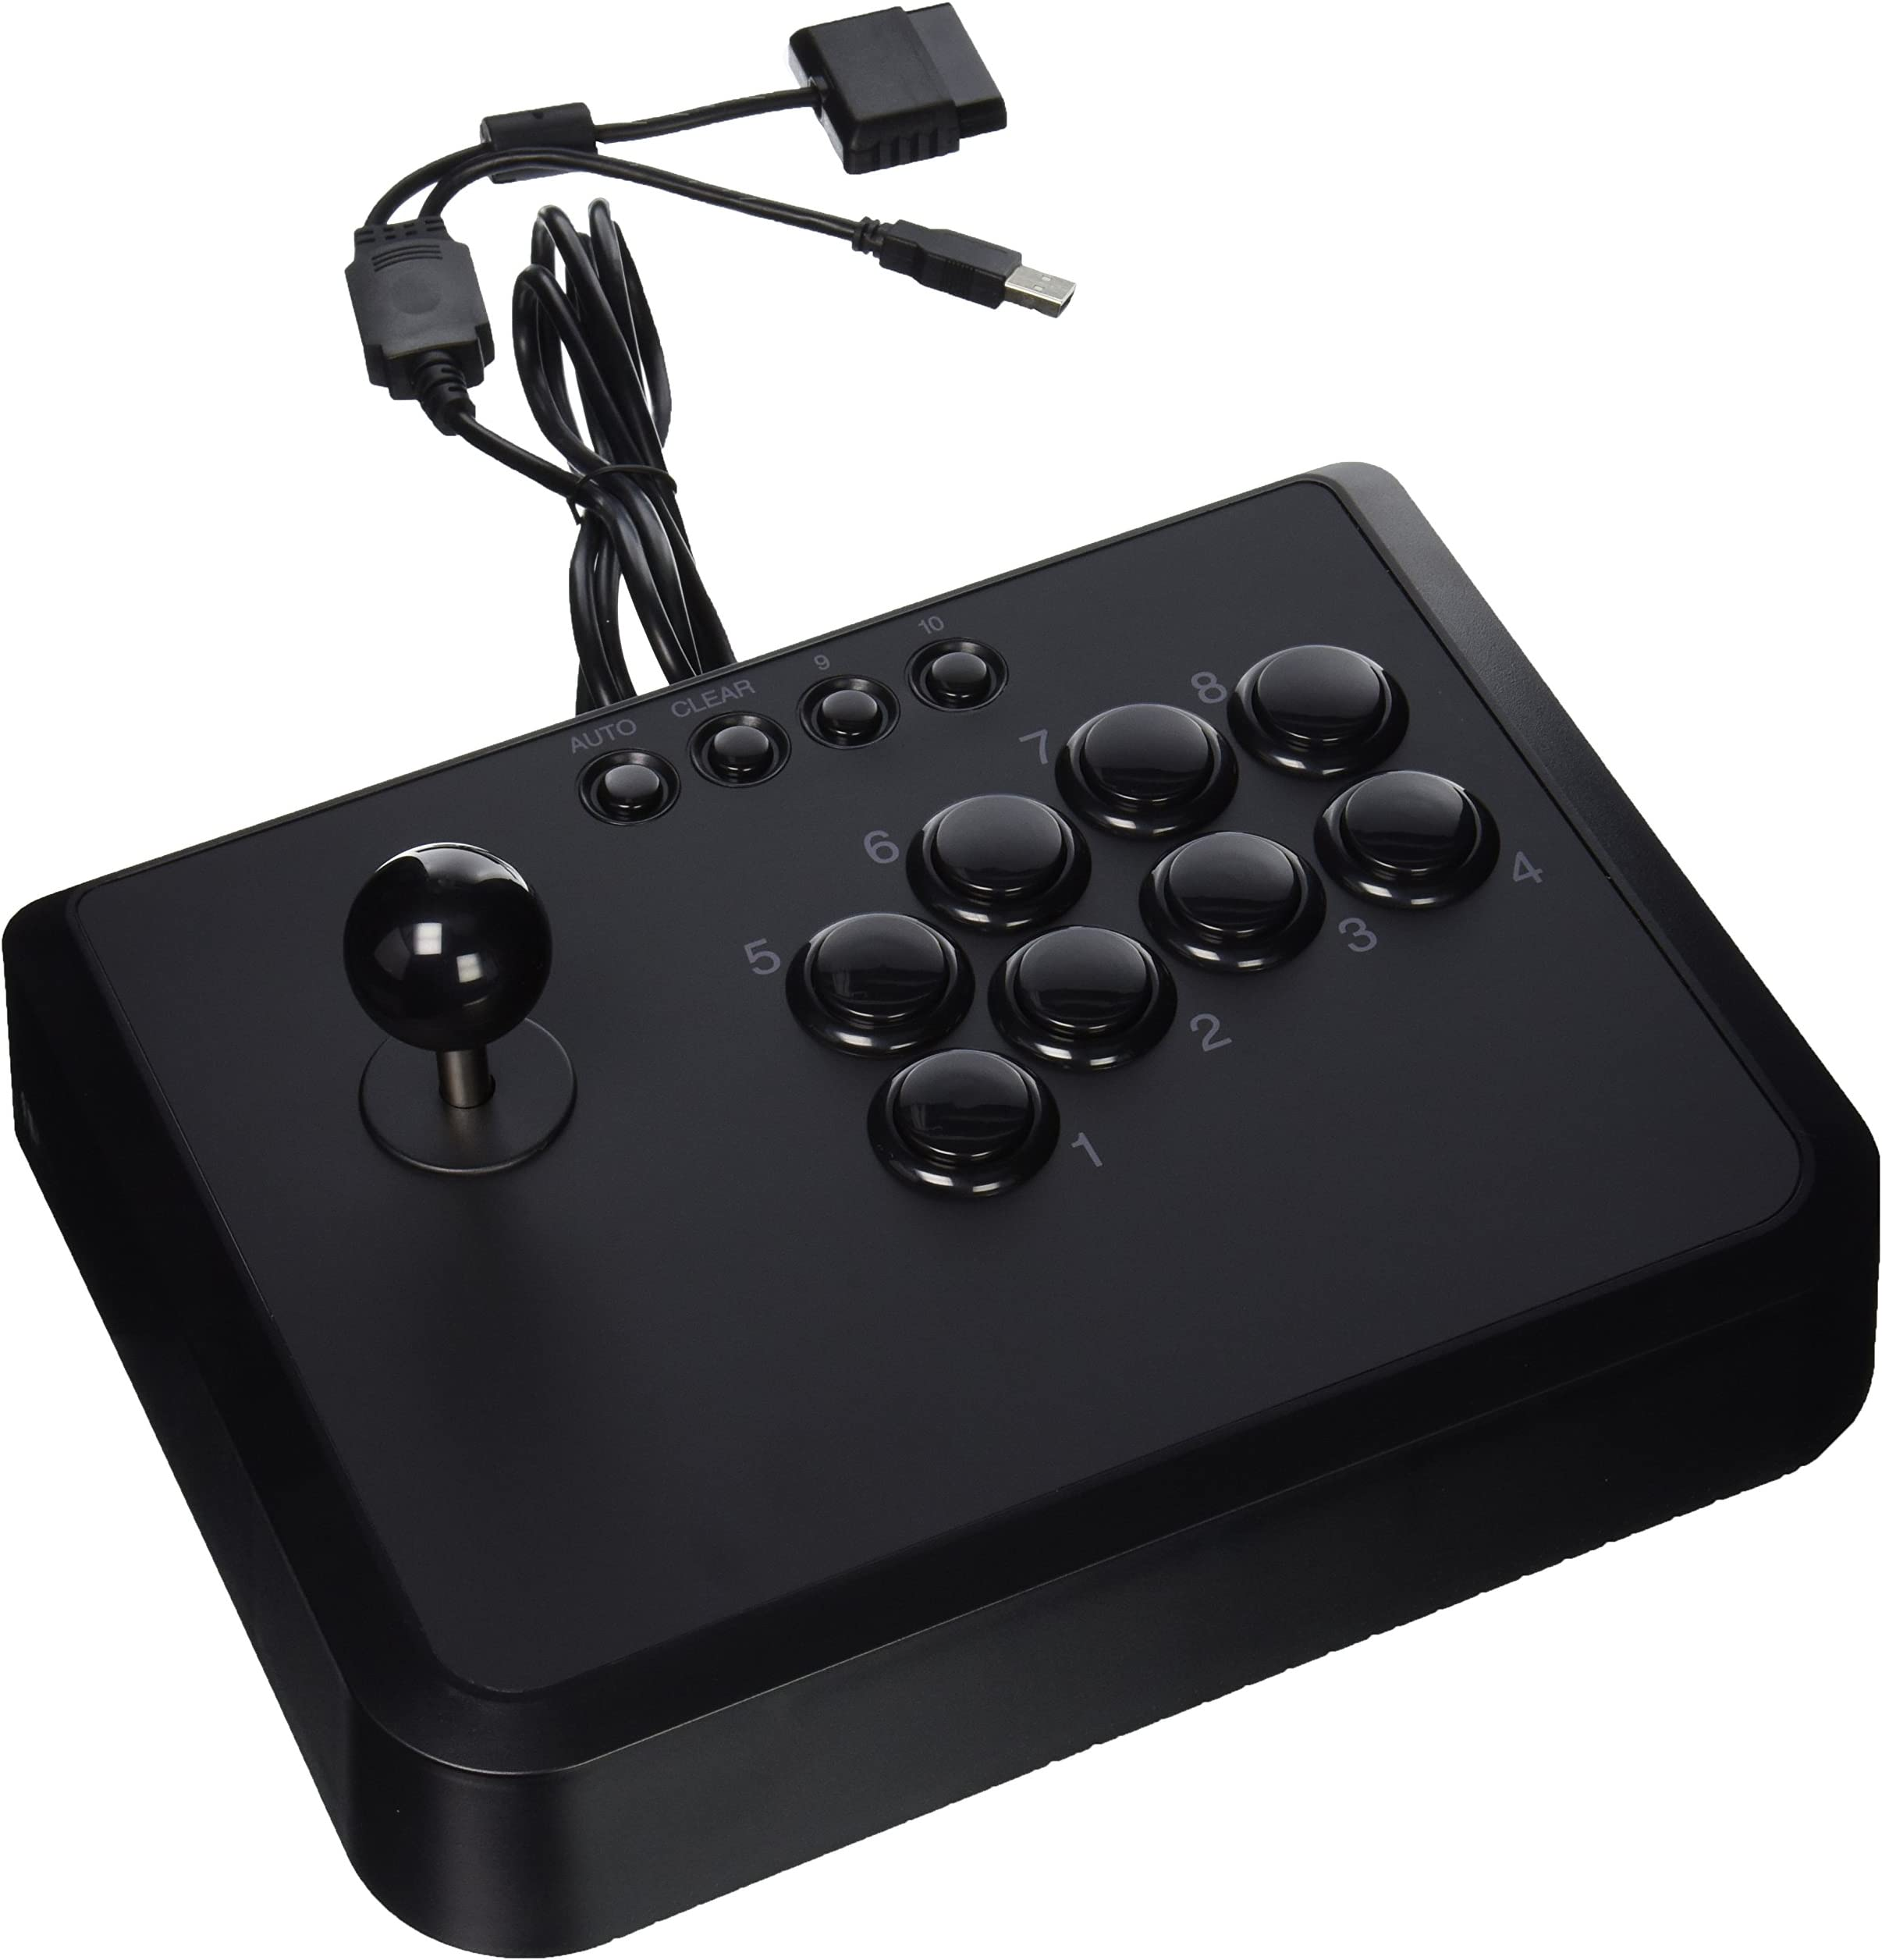 Joystick Arcade Fighting Stick Mayflash Para Ps2 Ps3 Pc Usb Universal